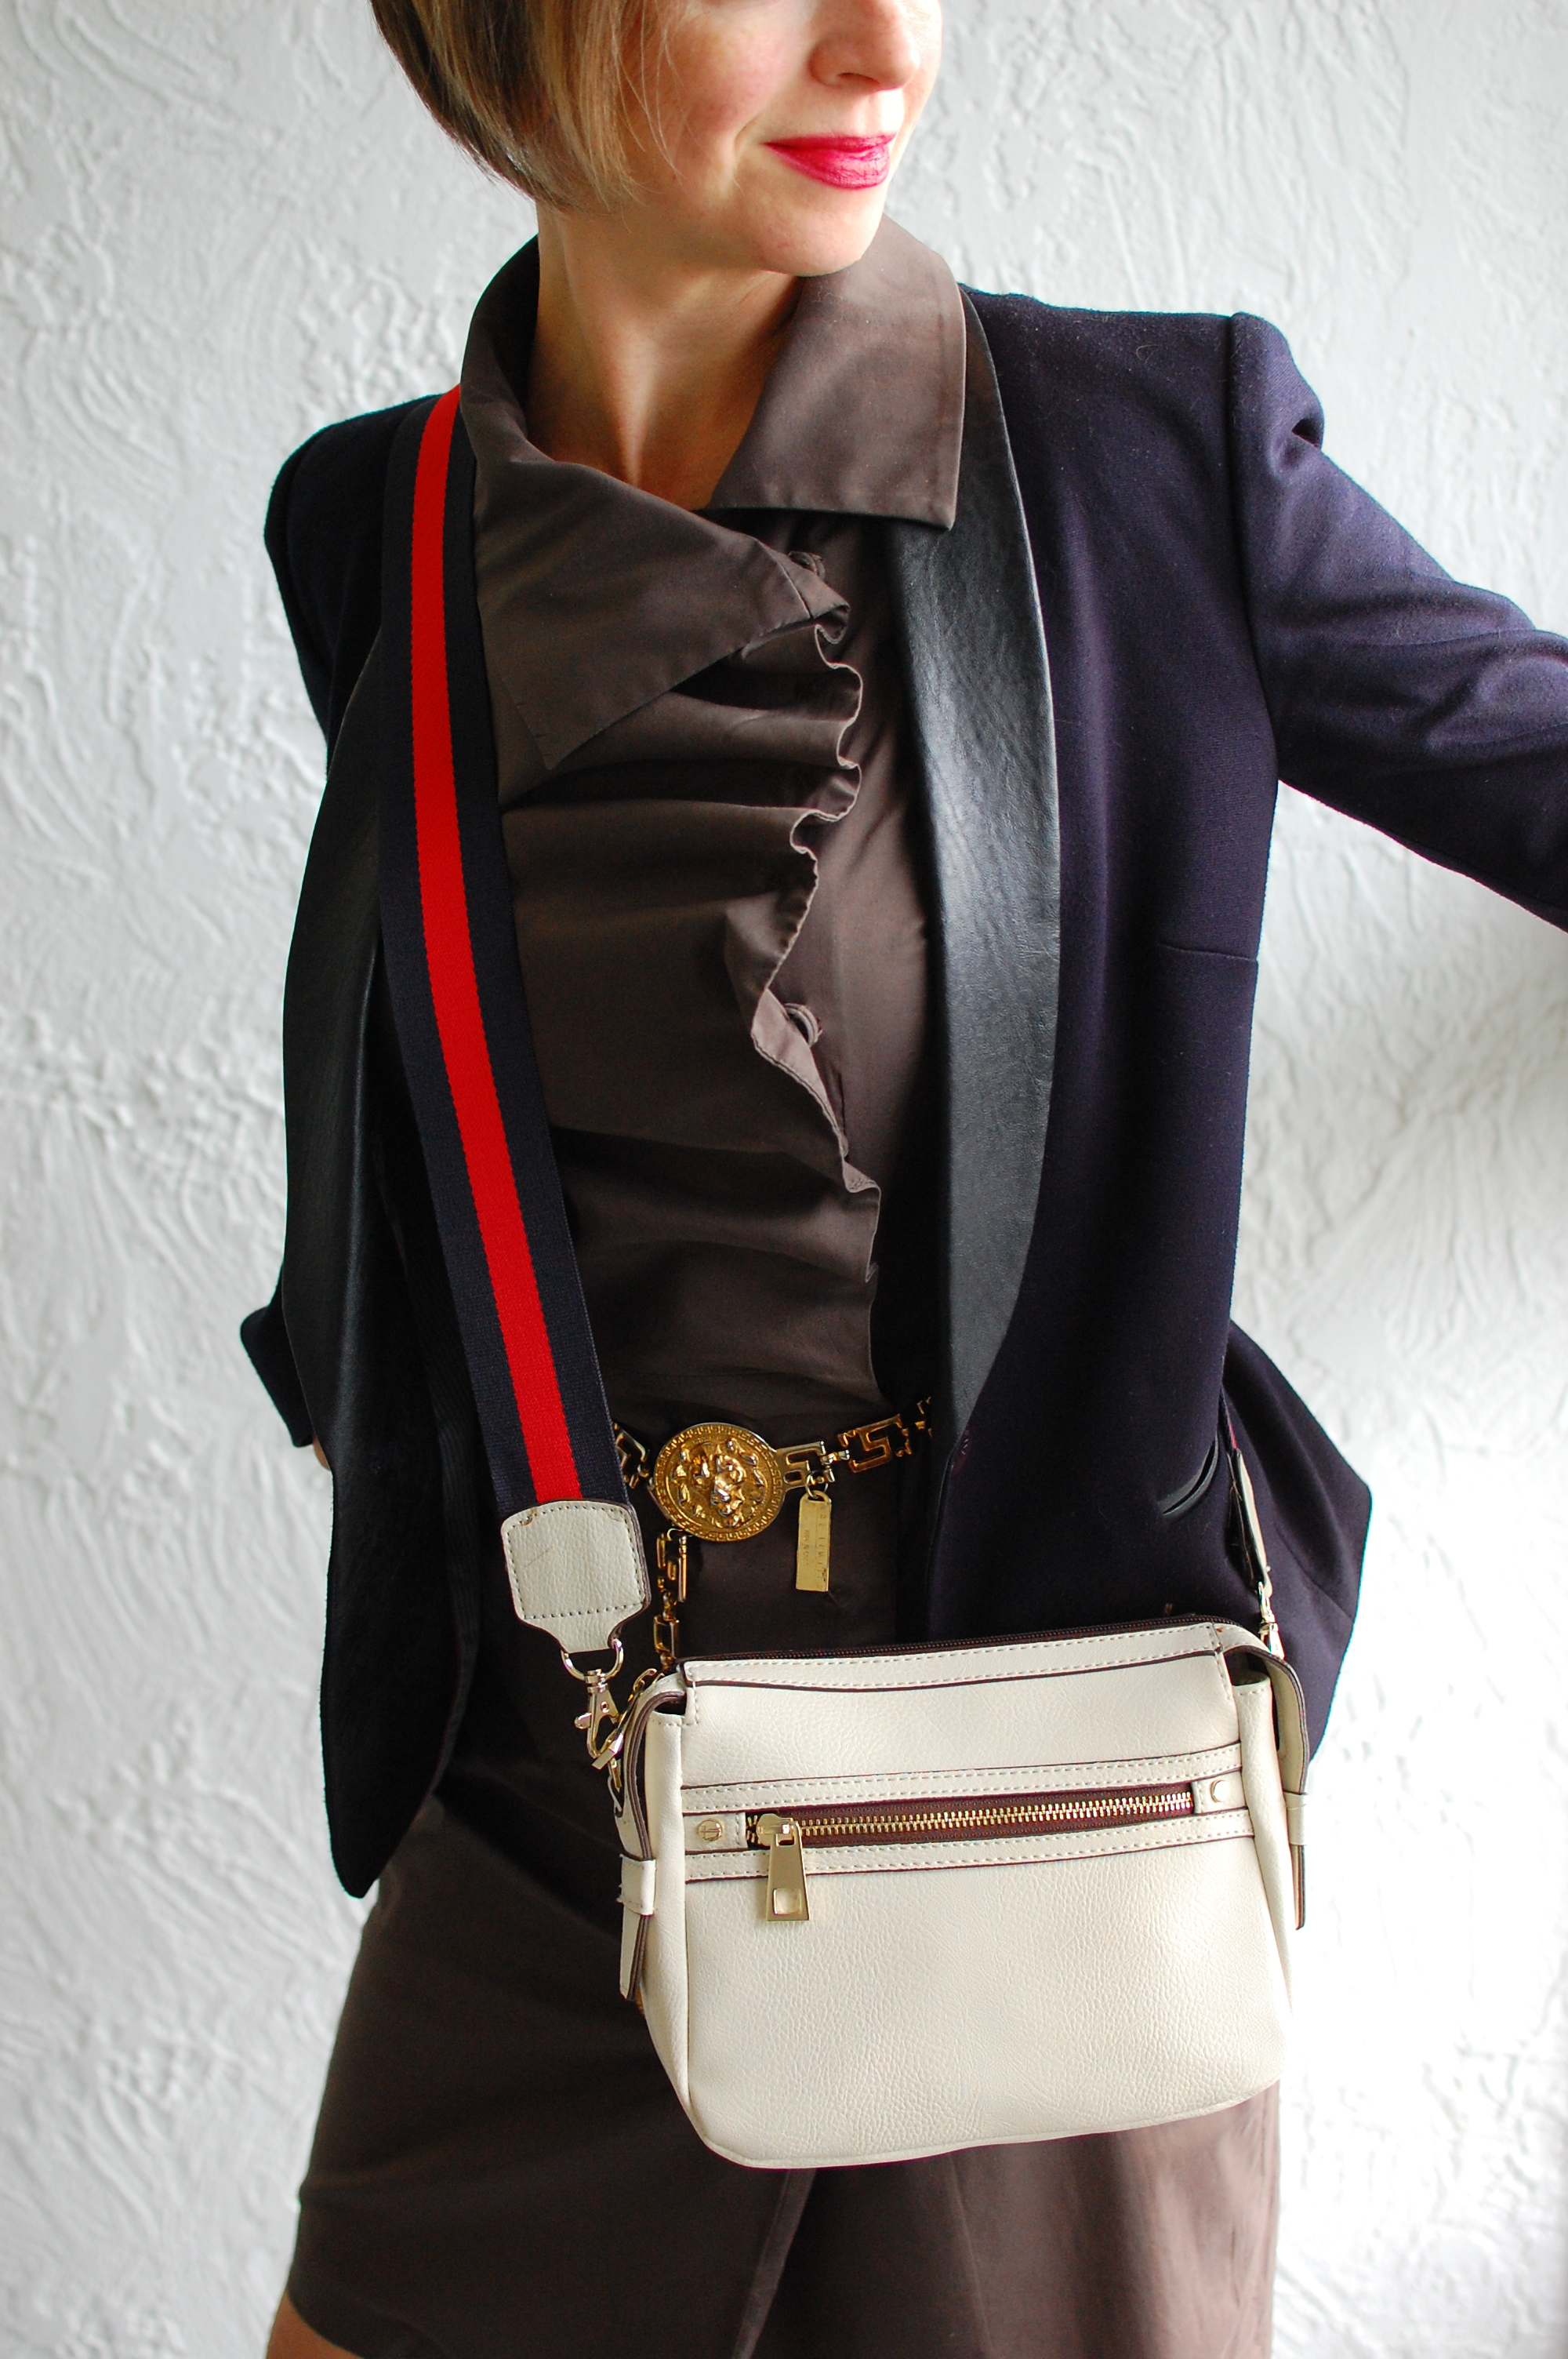 white bag black navy leather trim blazer olive dress gold chain belt ootd whatiwore2day